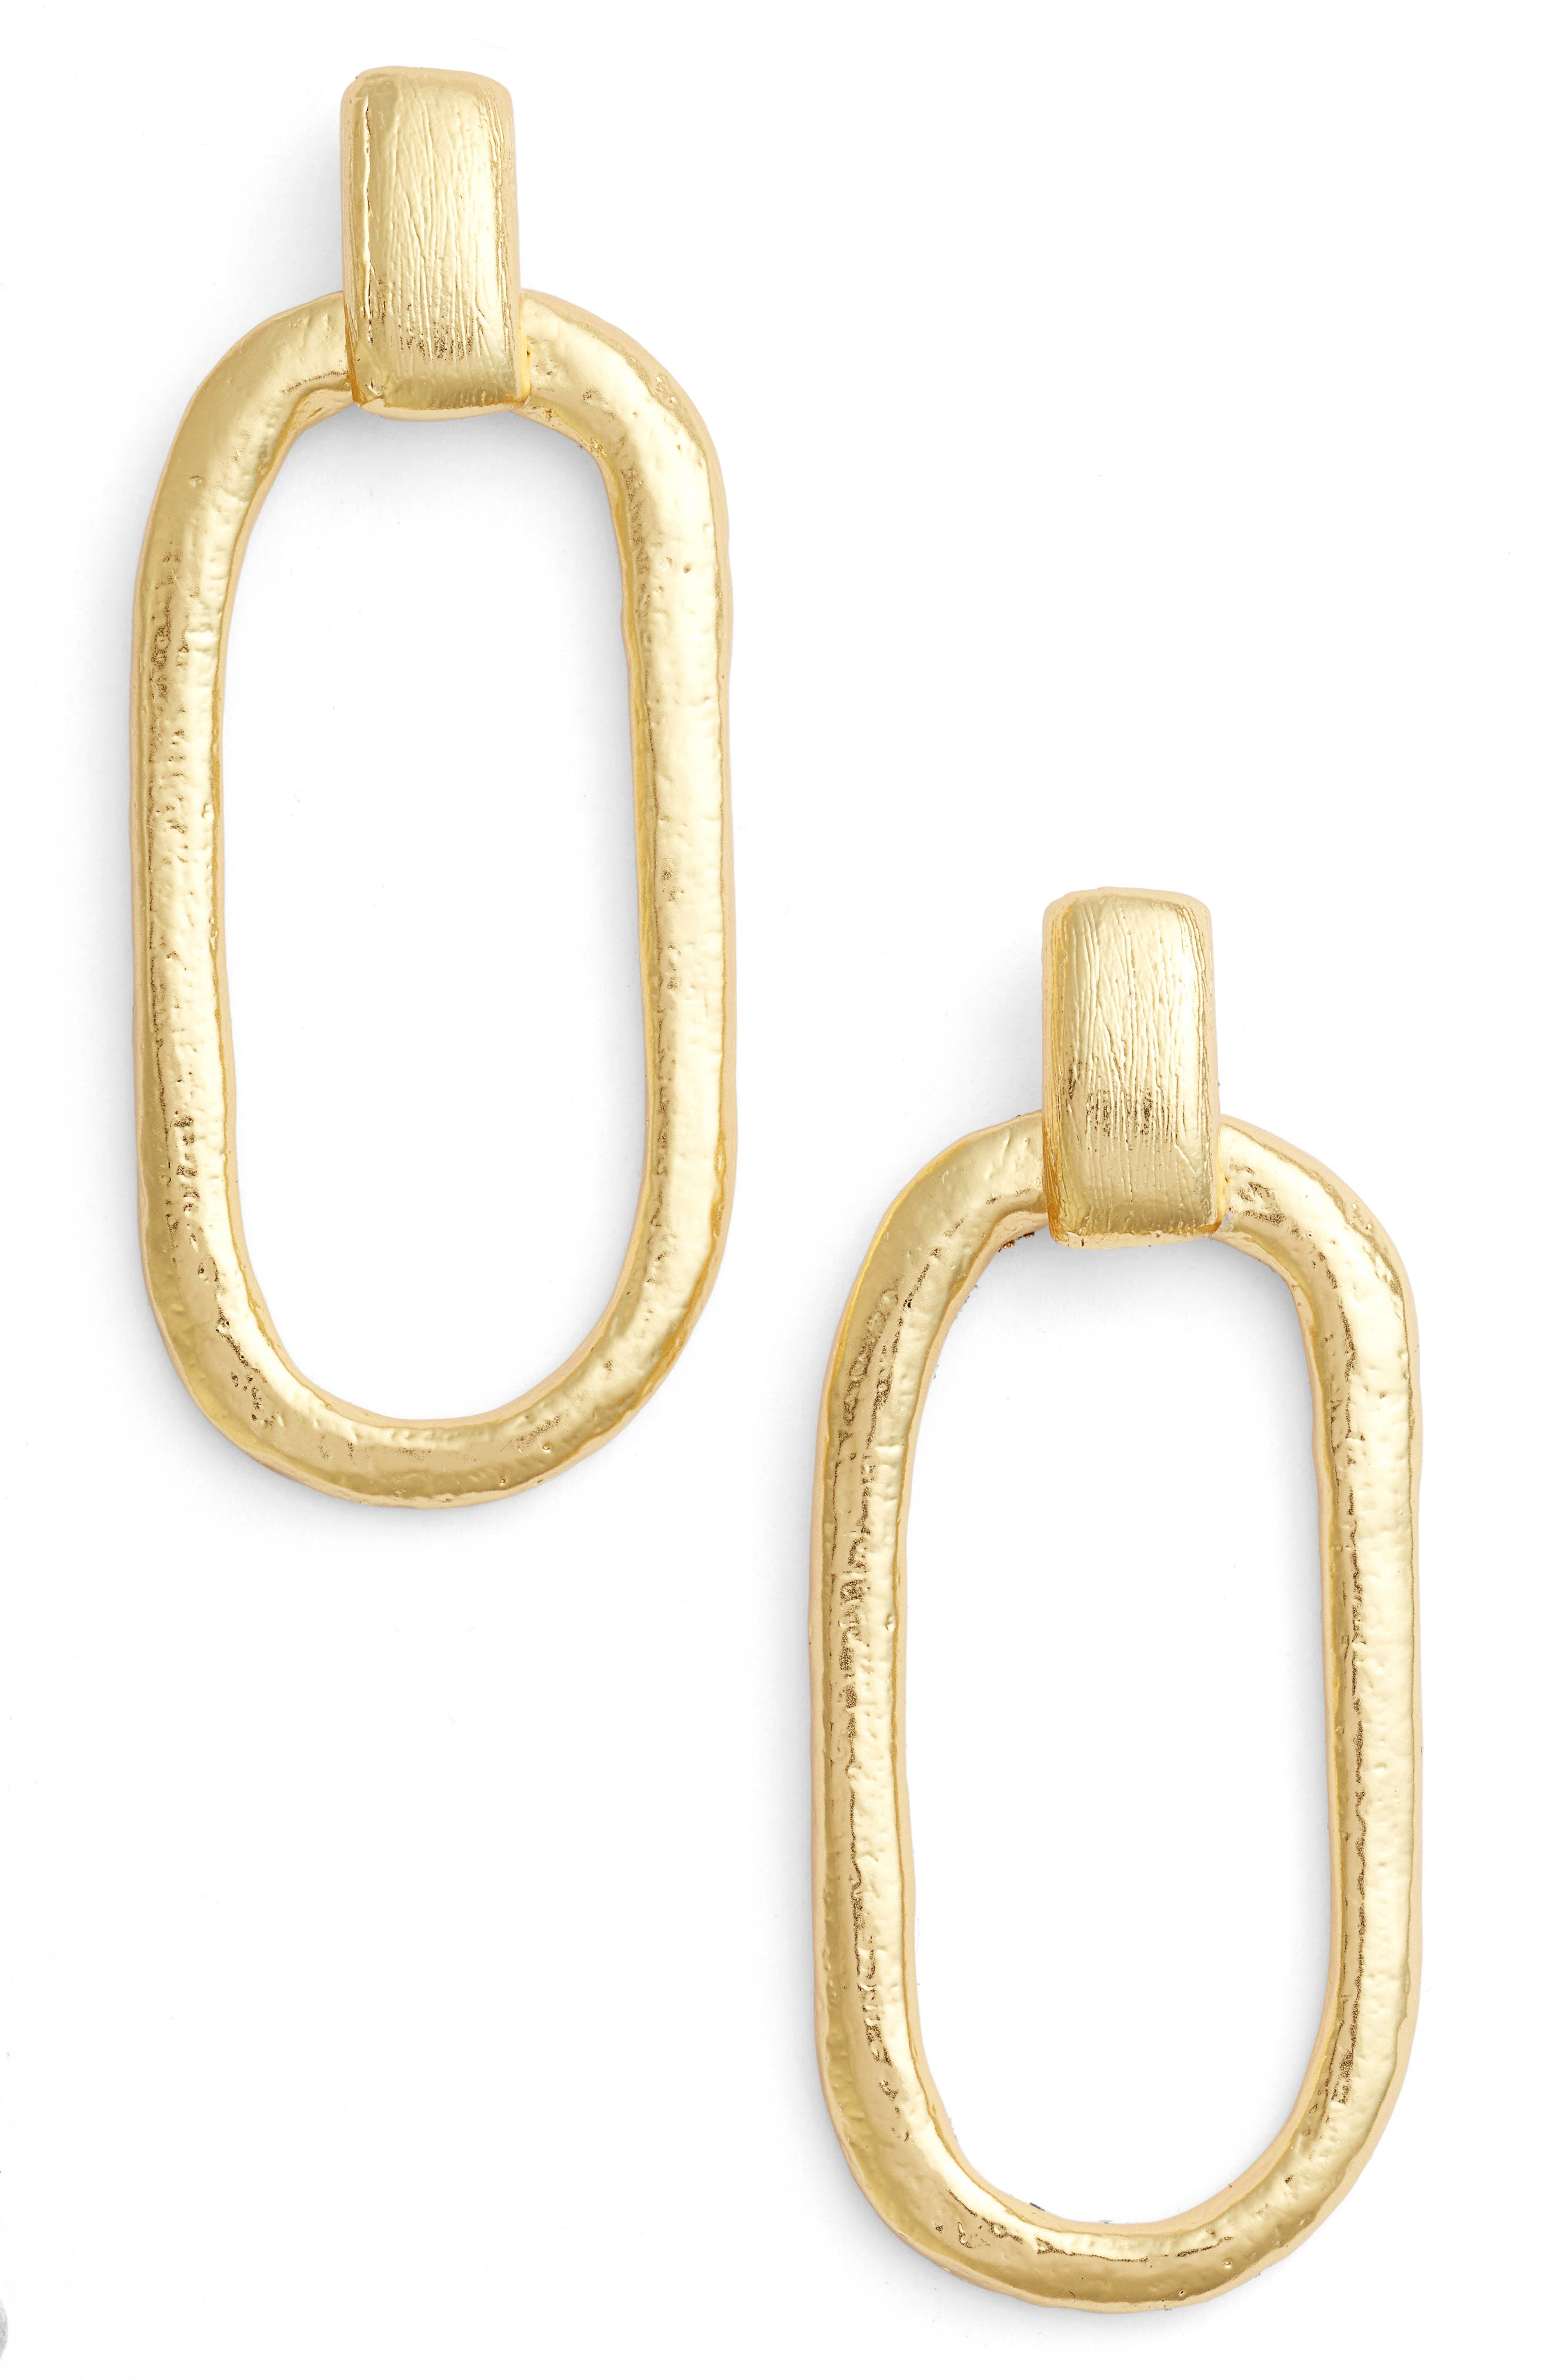 Main Image - Karine Sultan Doorknocker Earrings